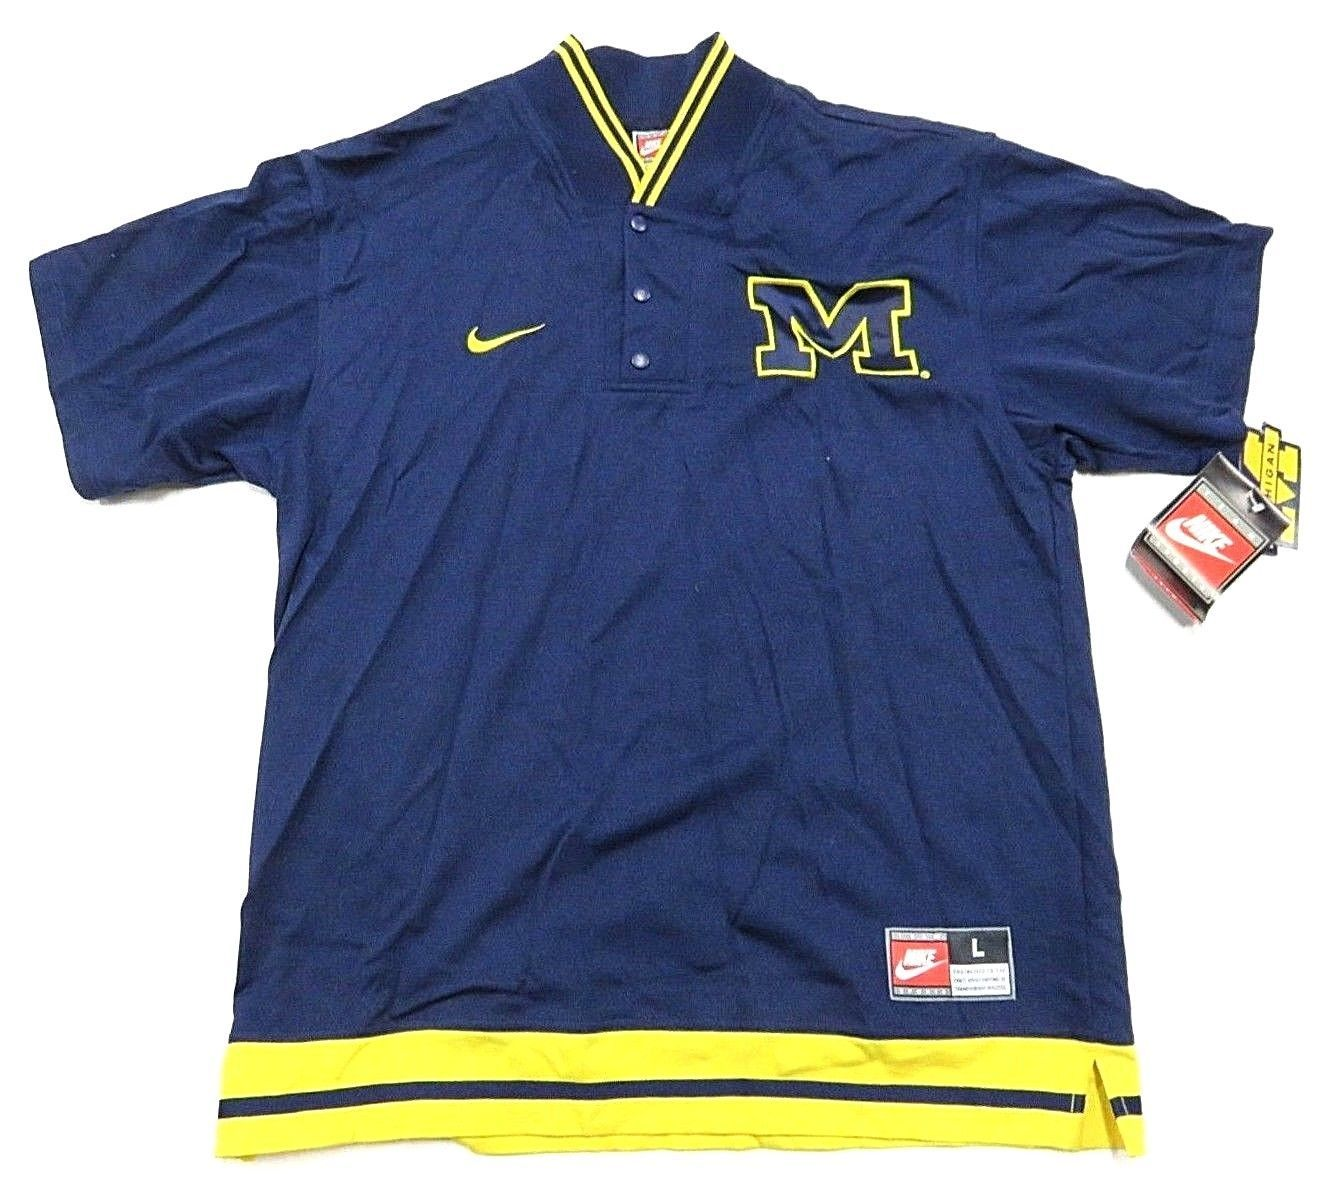 cheaper 2a6aa a015f NWT Michigan Wolverines Men s Blue 1 4 and 50 similar items. S l1600